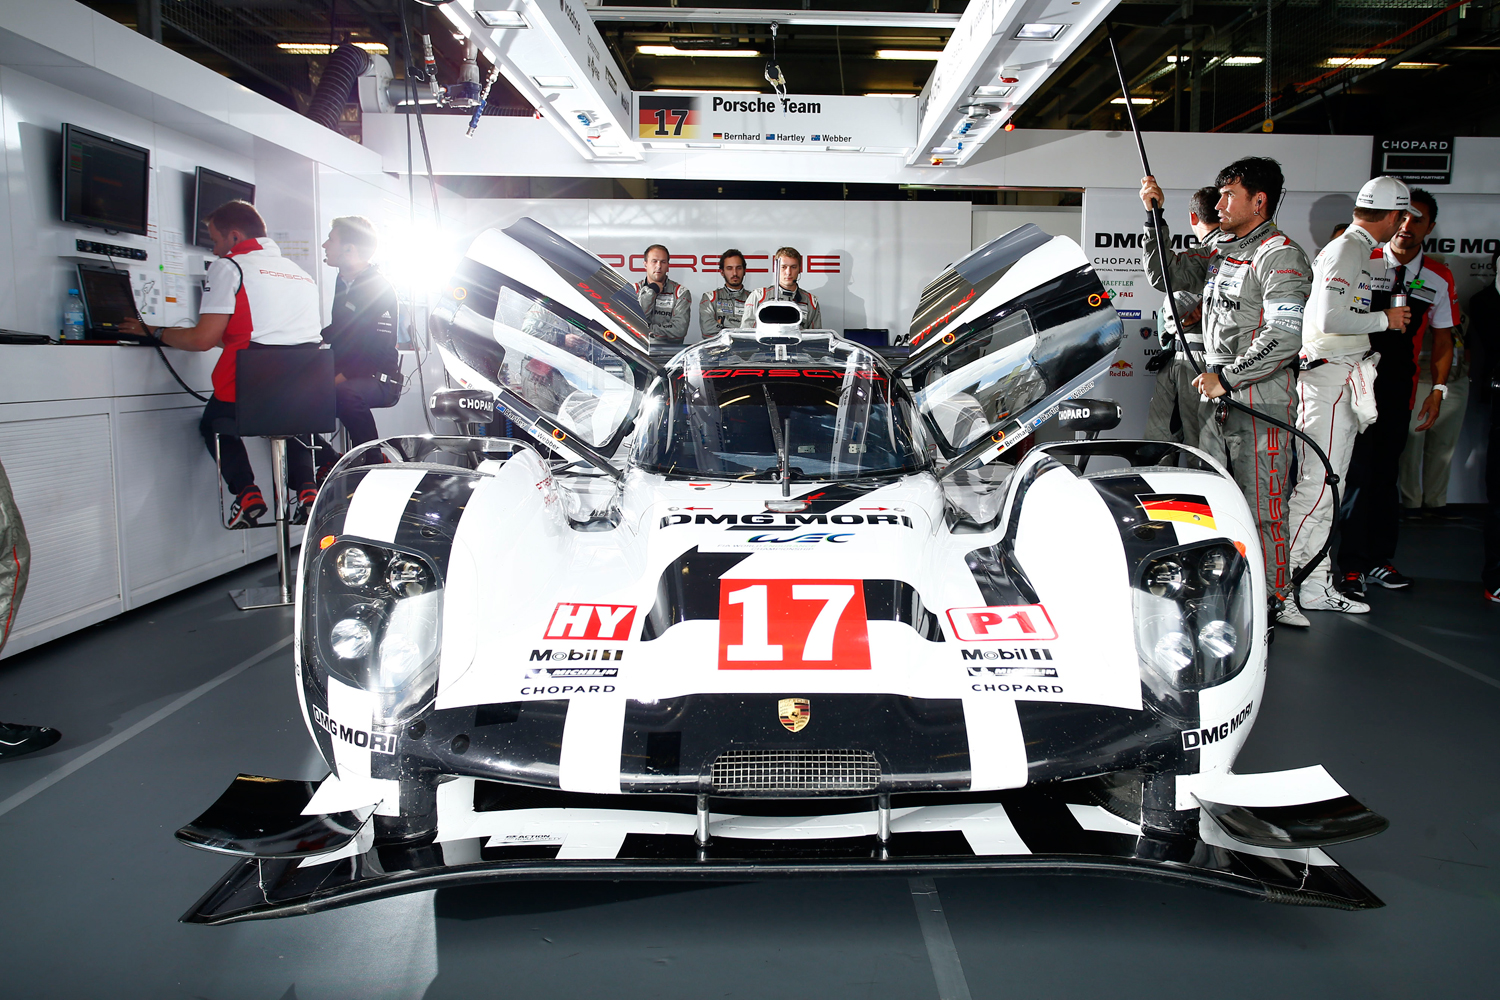 Porsche Motorsport dominates the 6 Hours of Nürburgring 2015 with a double victory